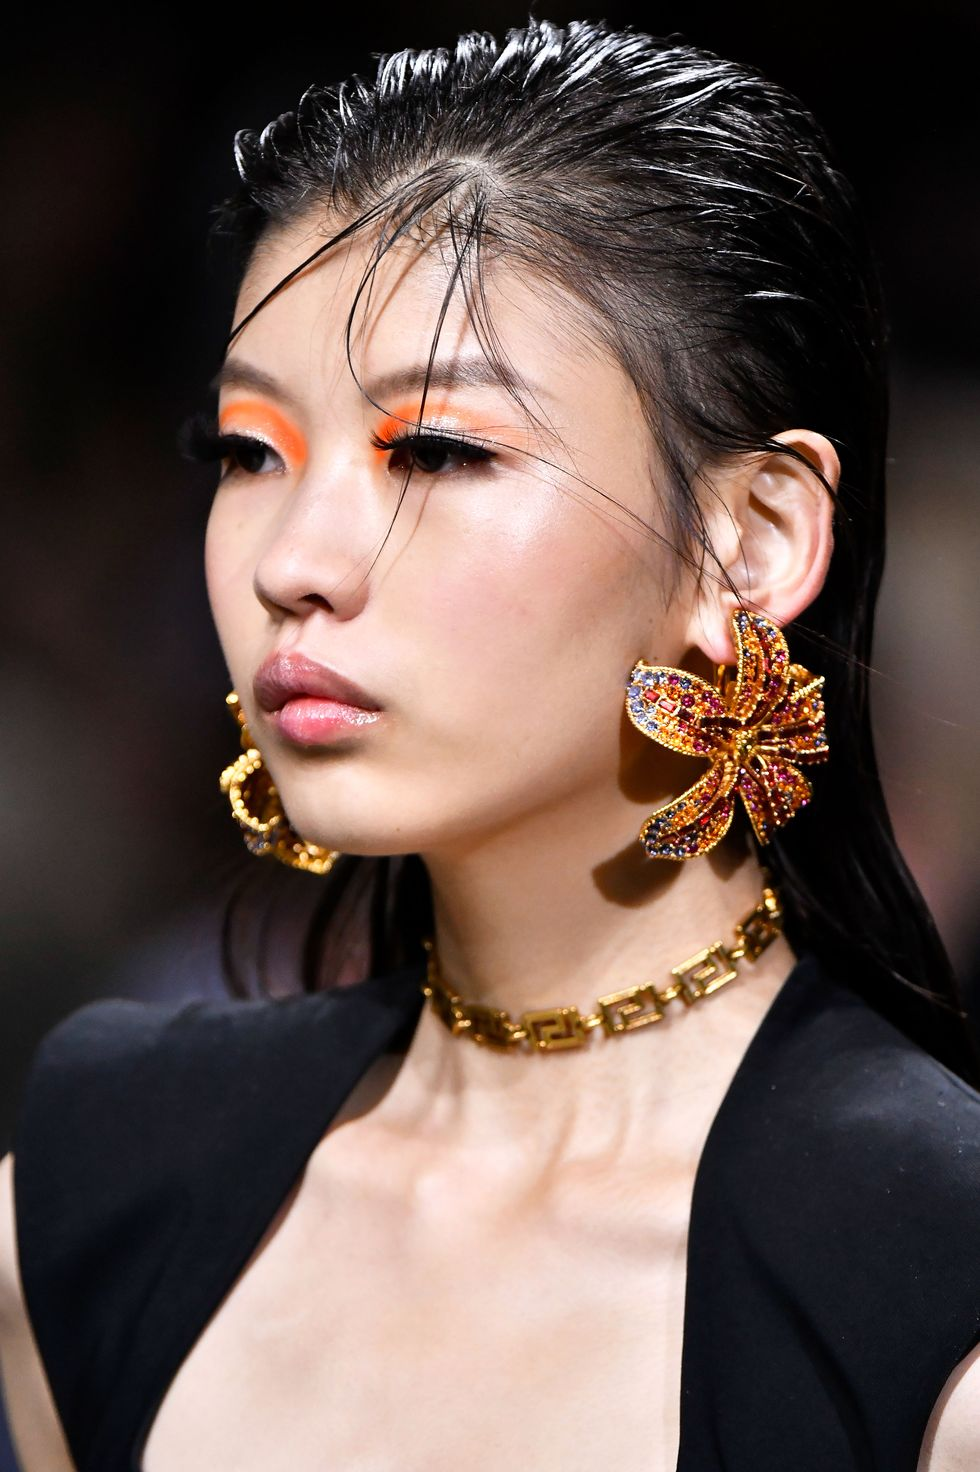 Here's What You Should Do With Your Makeup in 2020